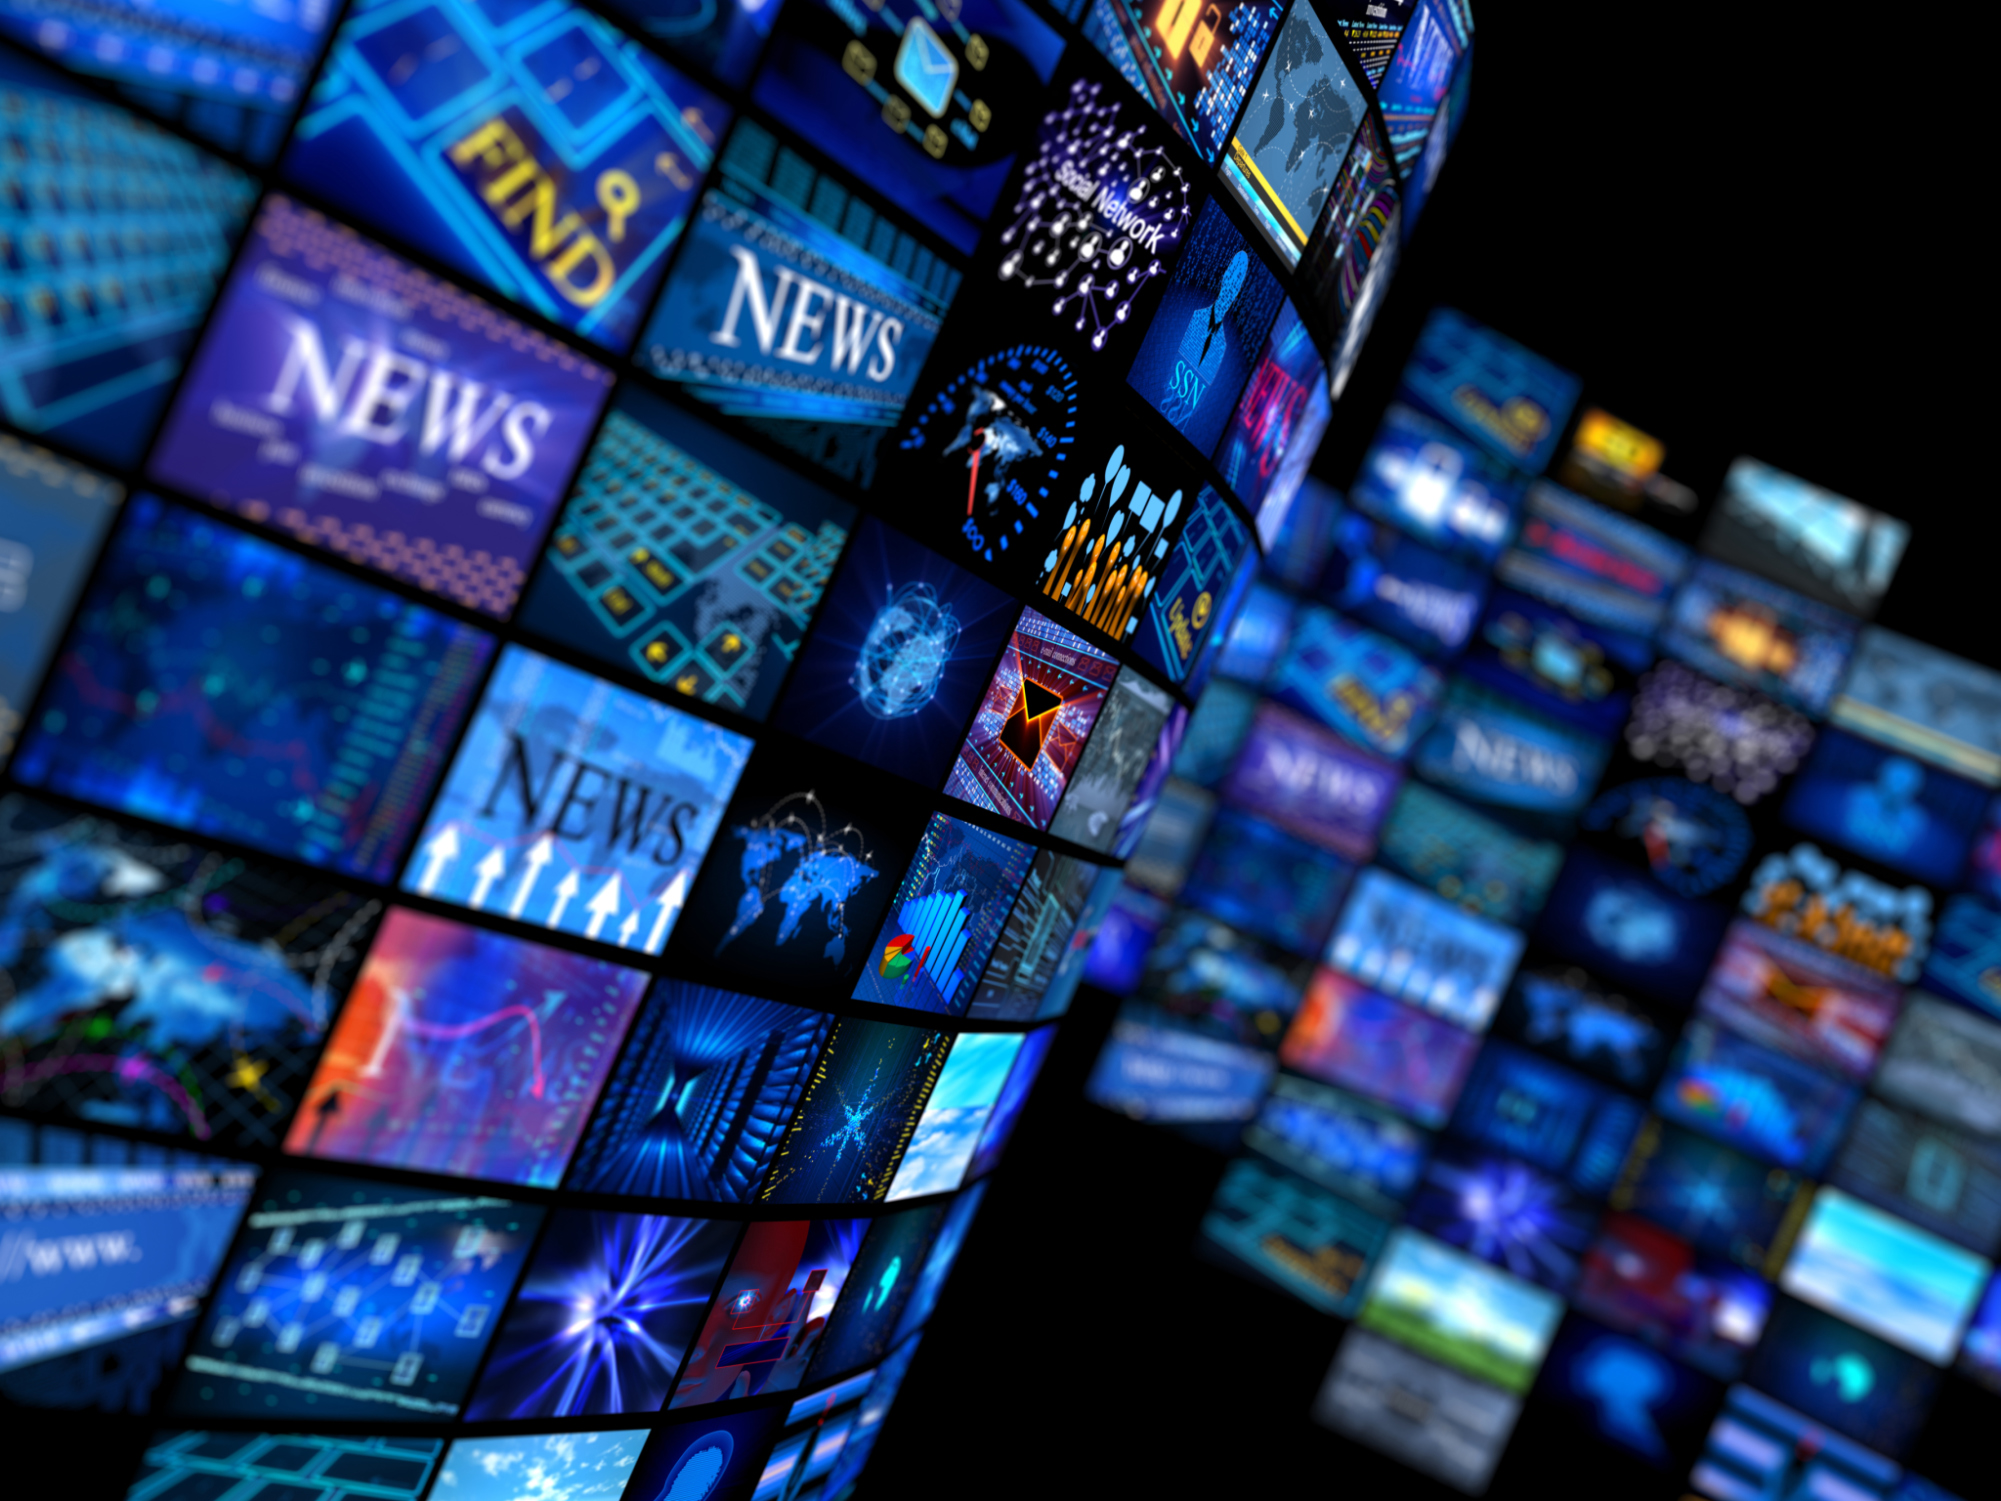 essay on influence of cable t.v network in pakistan Cable television watching habits of the youth in pakistan 3 designed to improve reception of commercial network broadcasts in in pakistan, cable television.